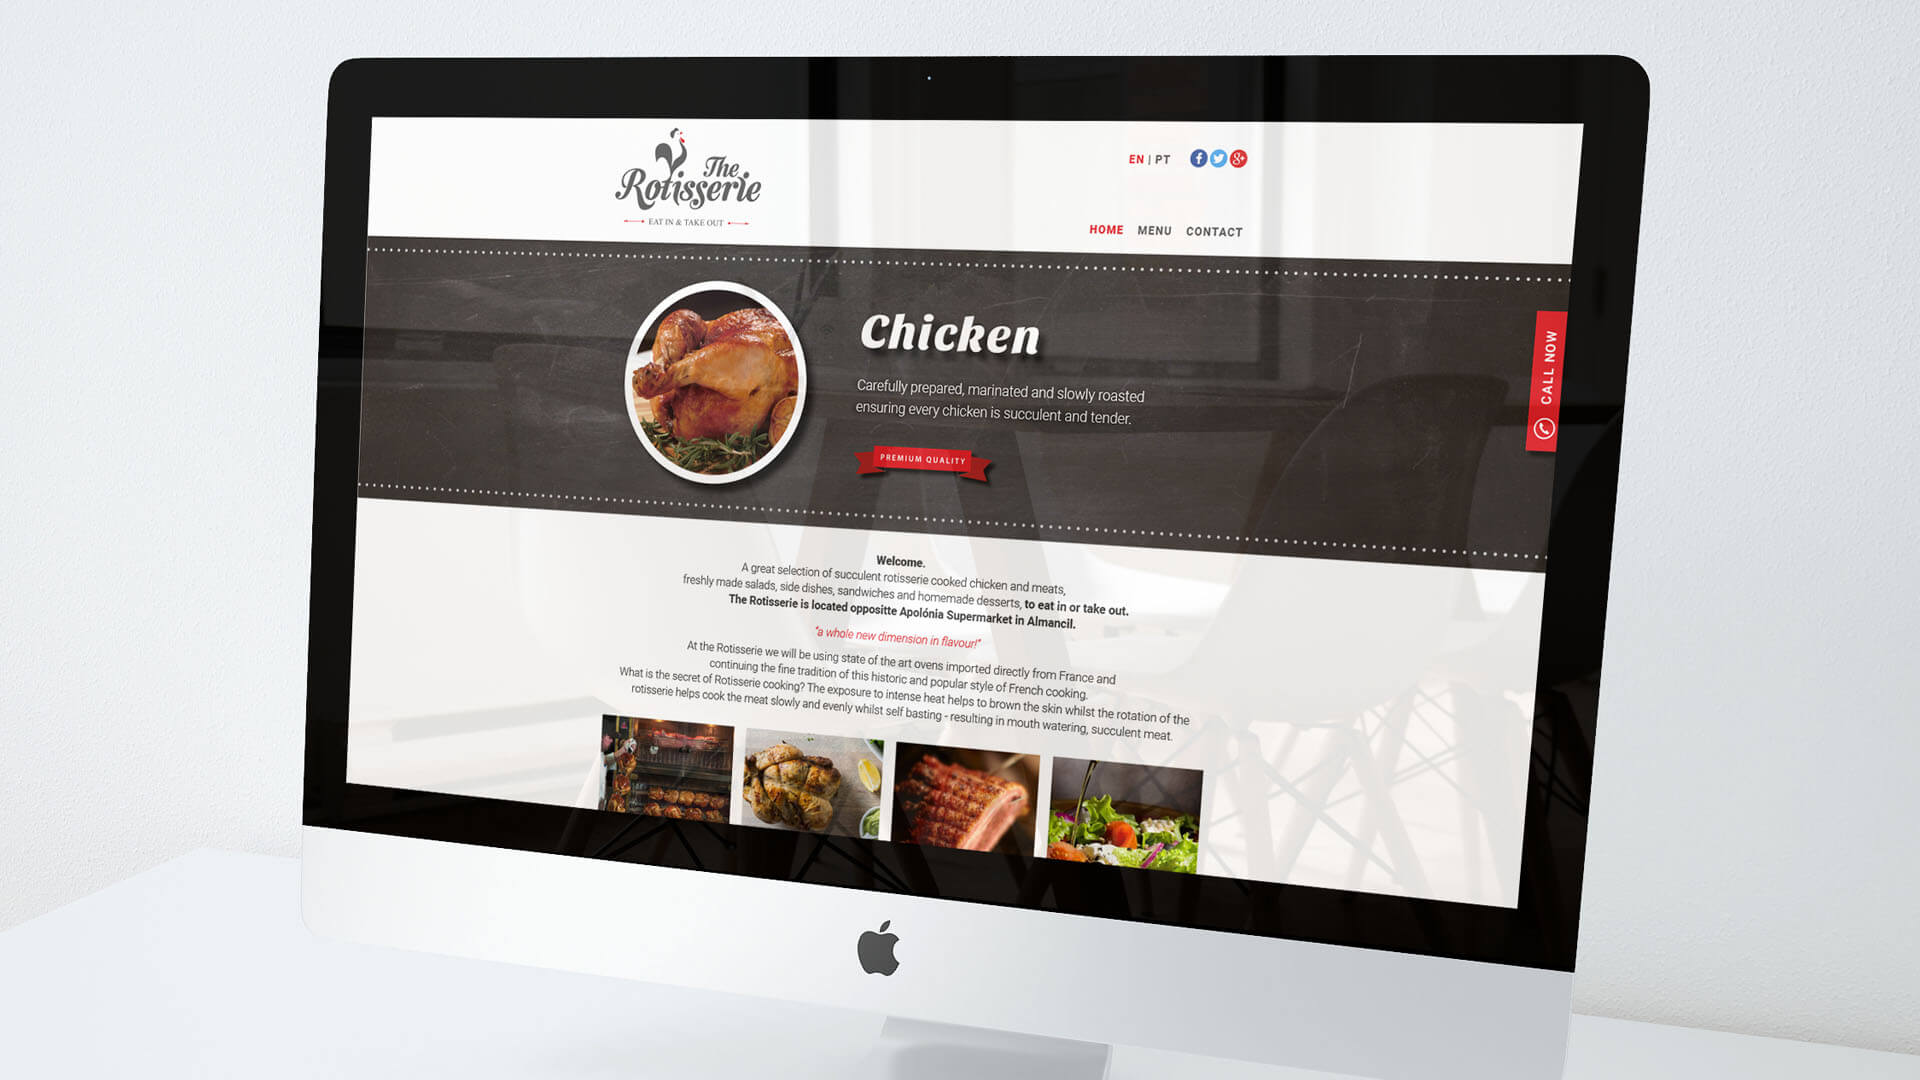 services-webdesign-gallery-hd-1920x1080_0004_rotisserie